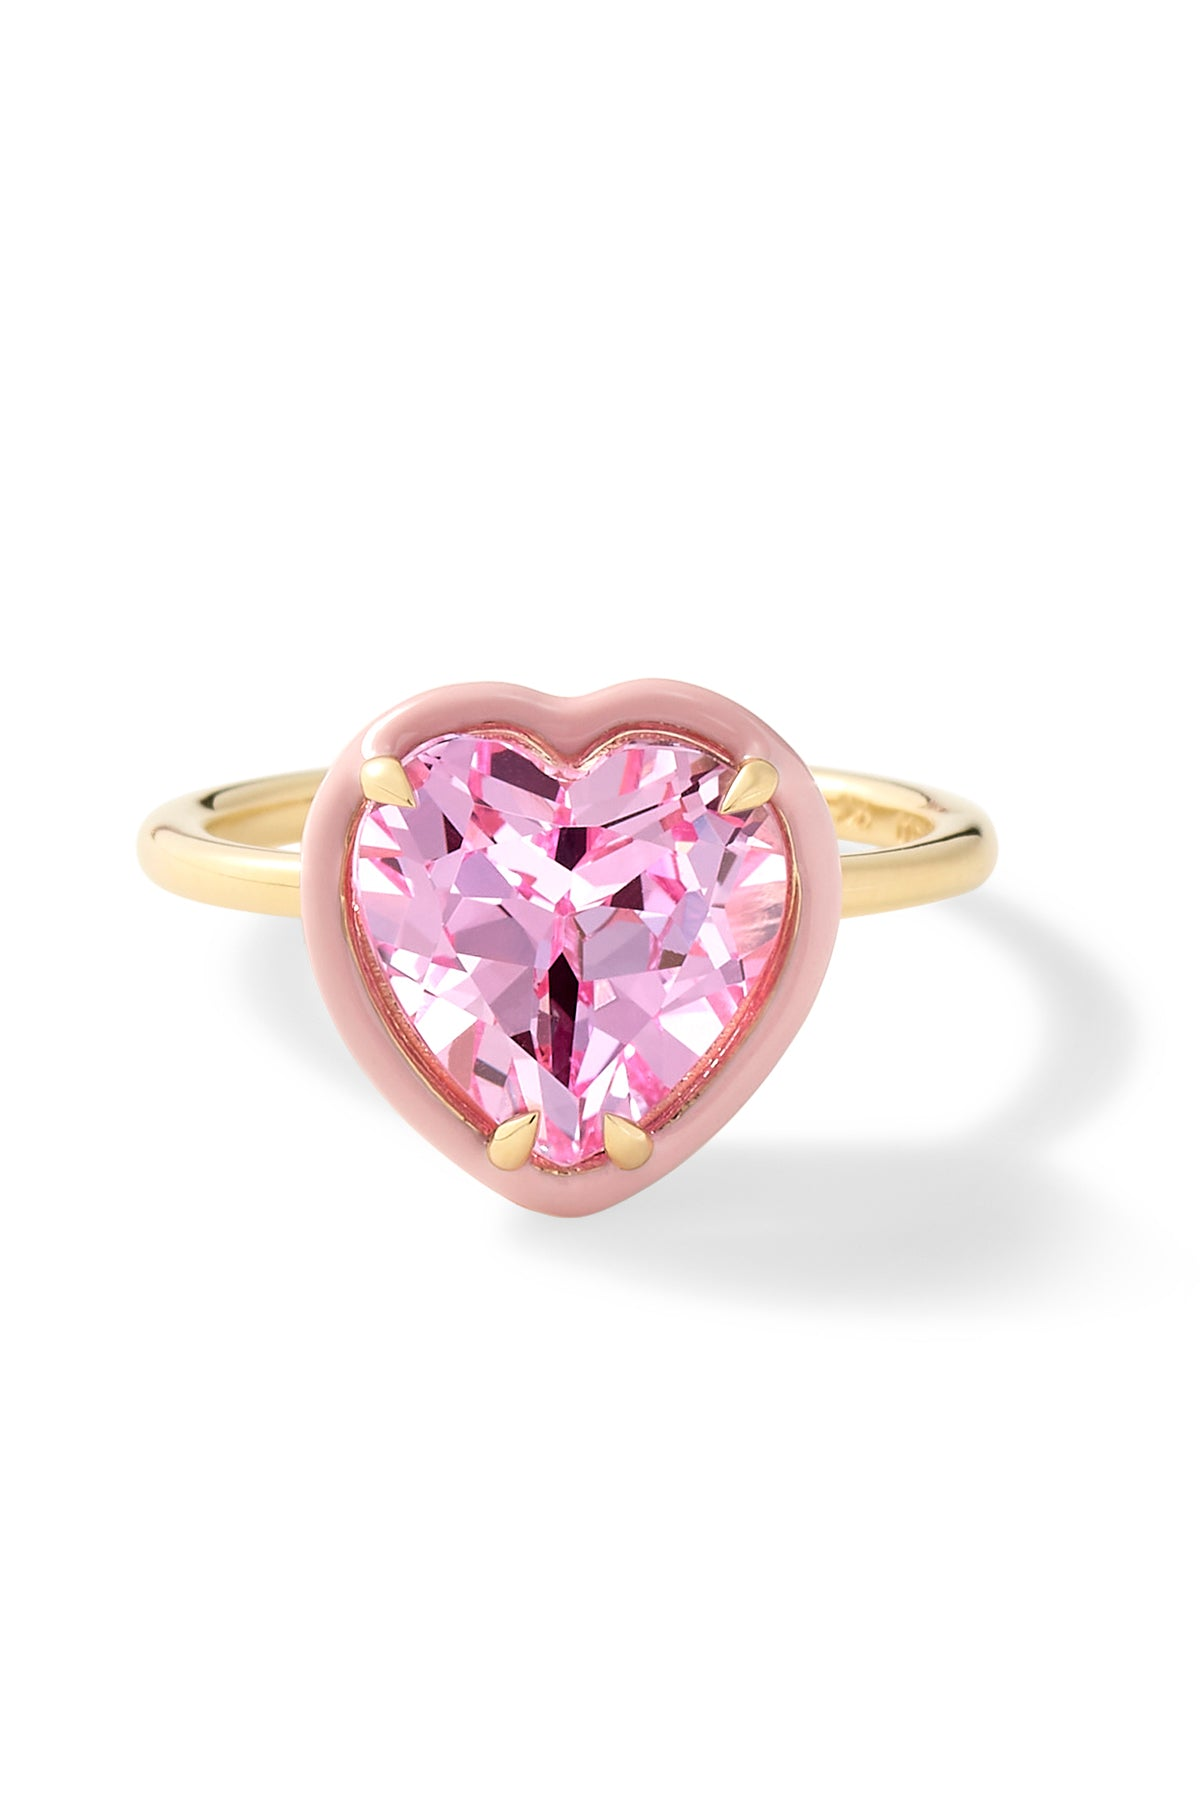 Heart-Shaped Pink Sapphire Cocktail Ring